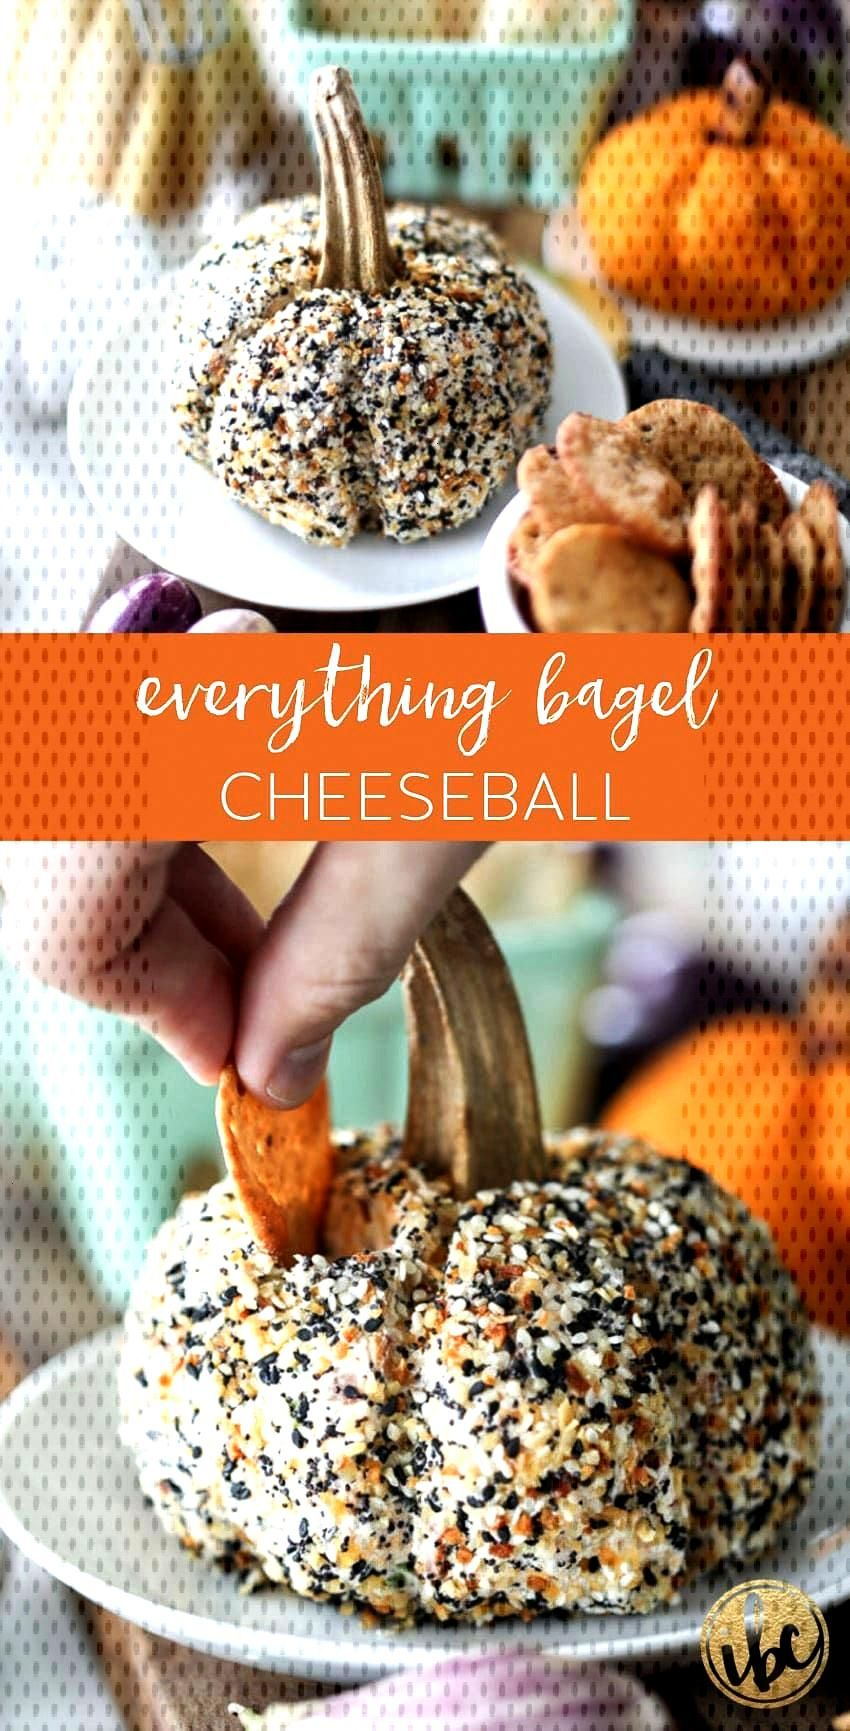 This pumpkin-shaped Everything Bagel Cheeseball is the perfect fall appetizer recipe. via @inspired